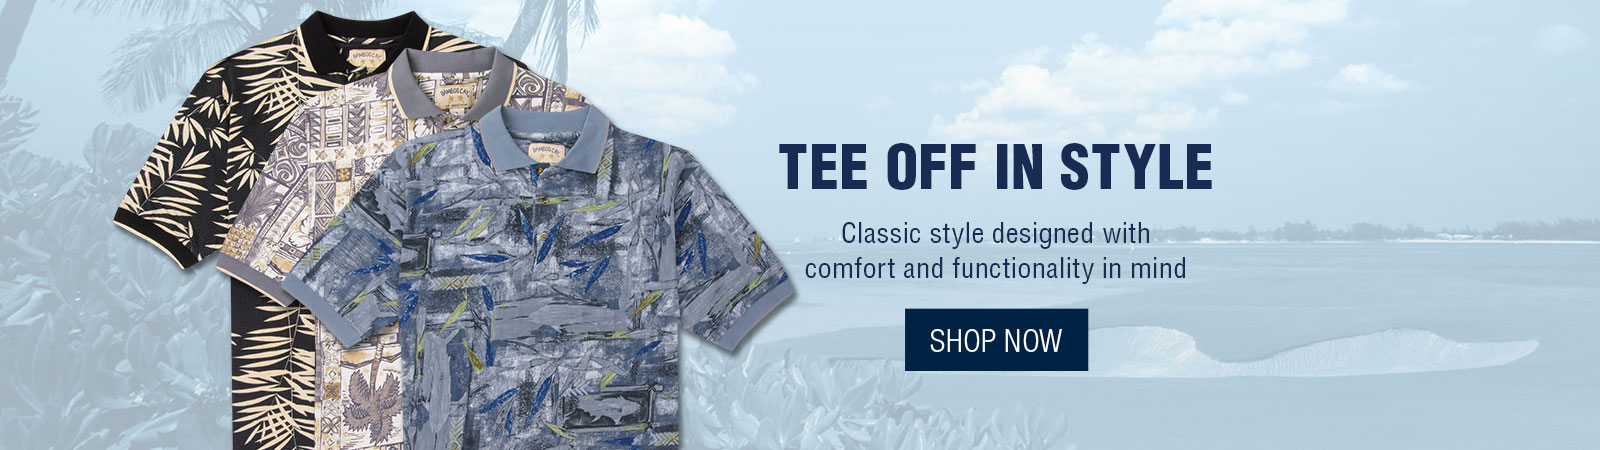 Tee off in style - Polo Shirts